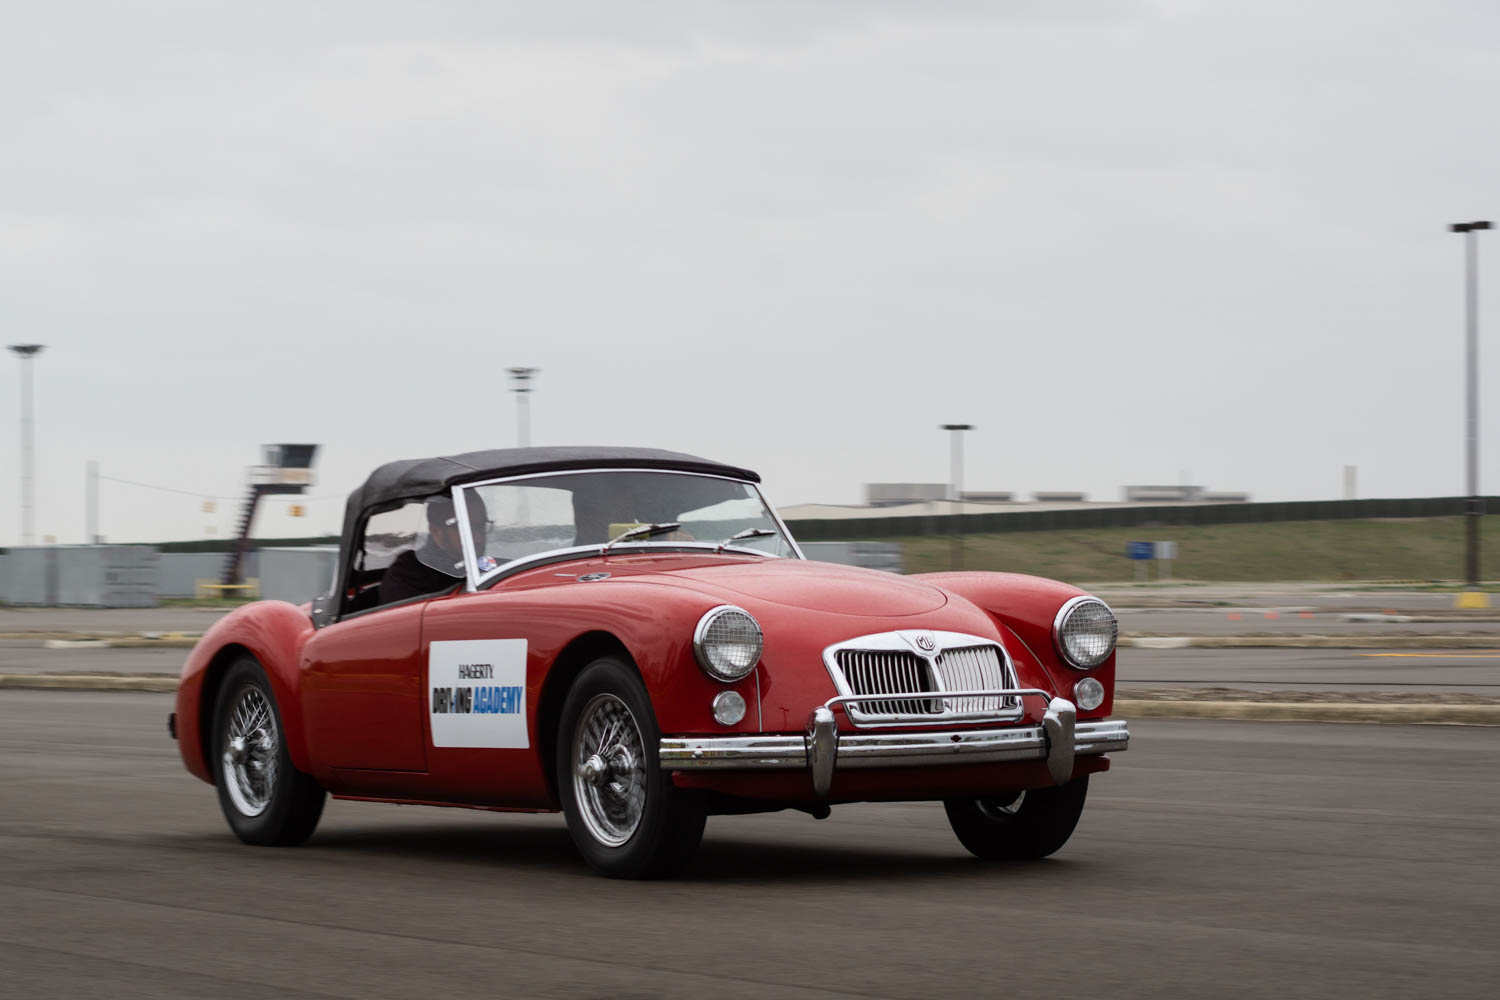 Jeff Peek owns a Triumph Spitfire and wanted to see how it compares to this MG TD